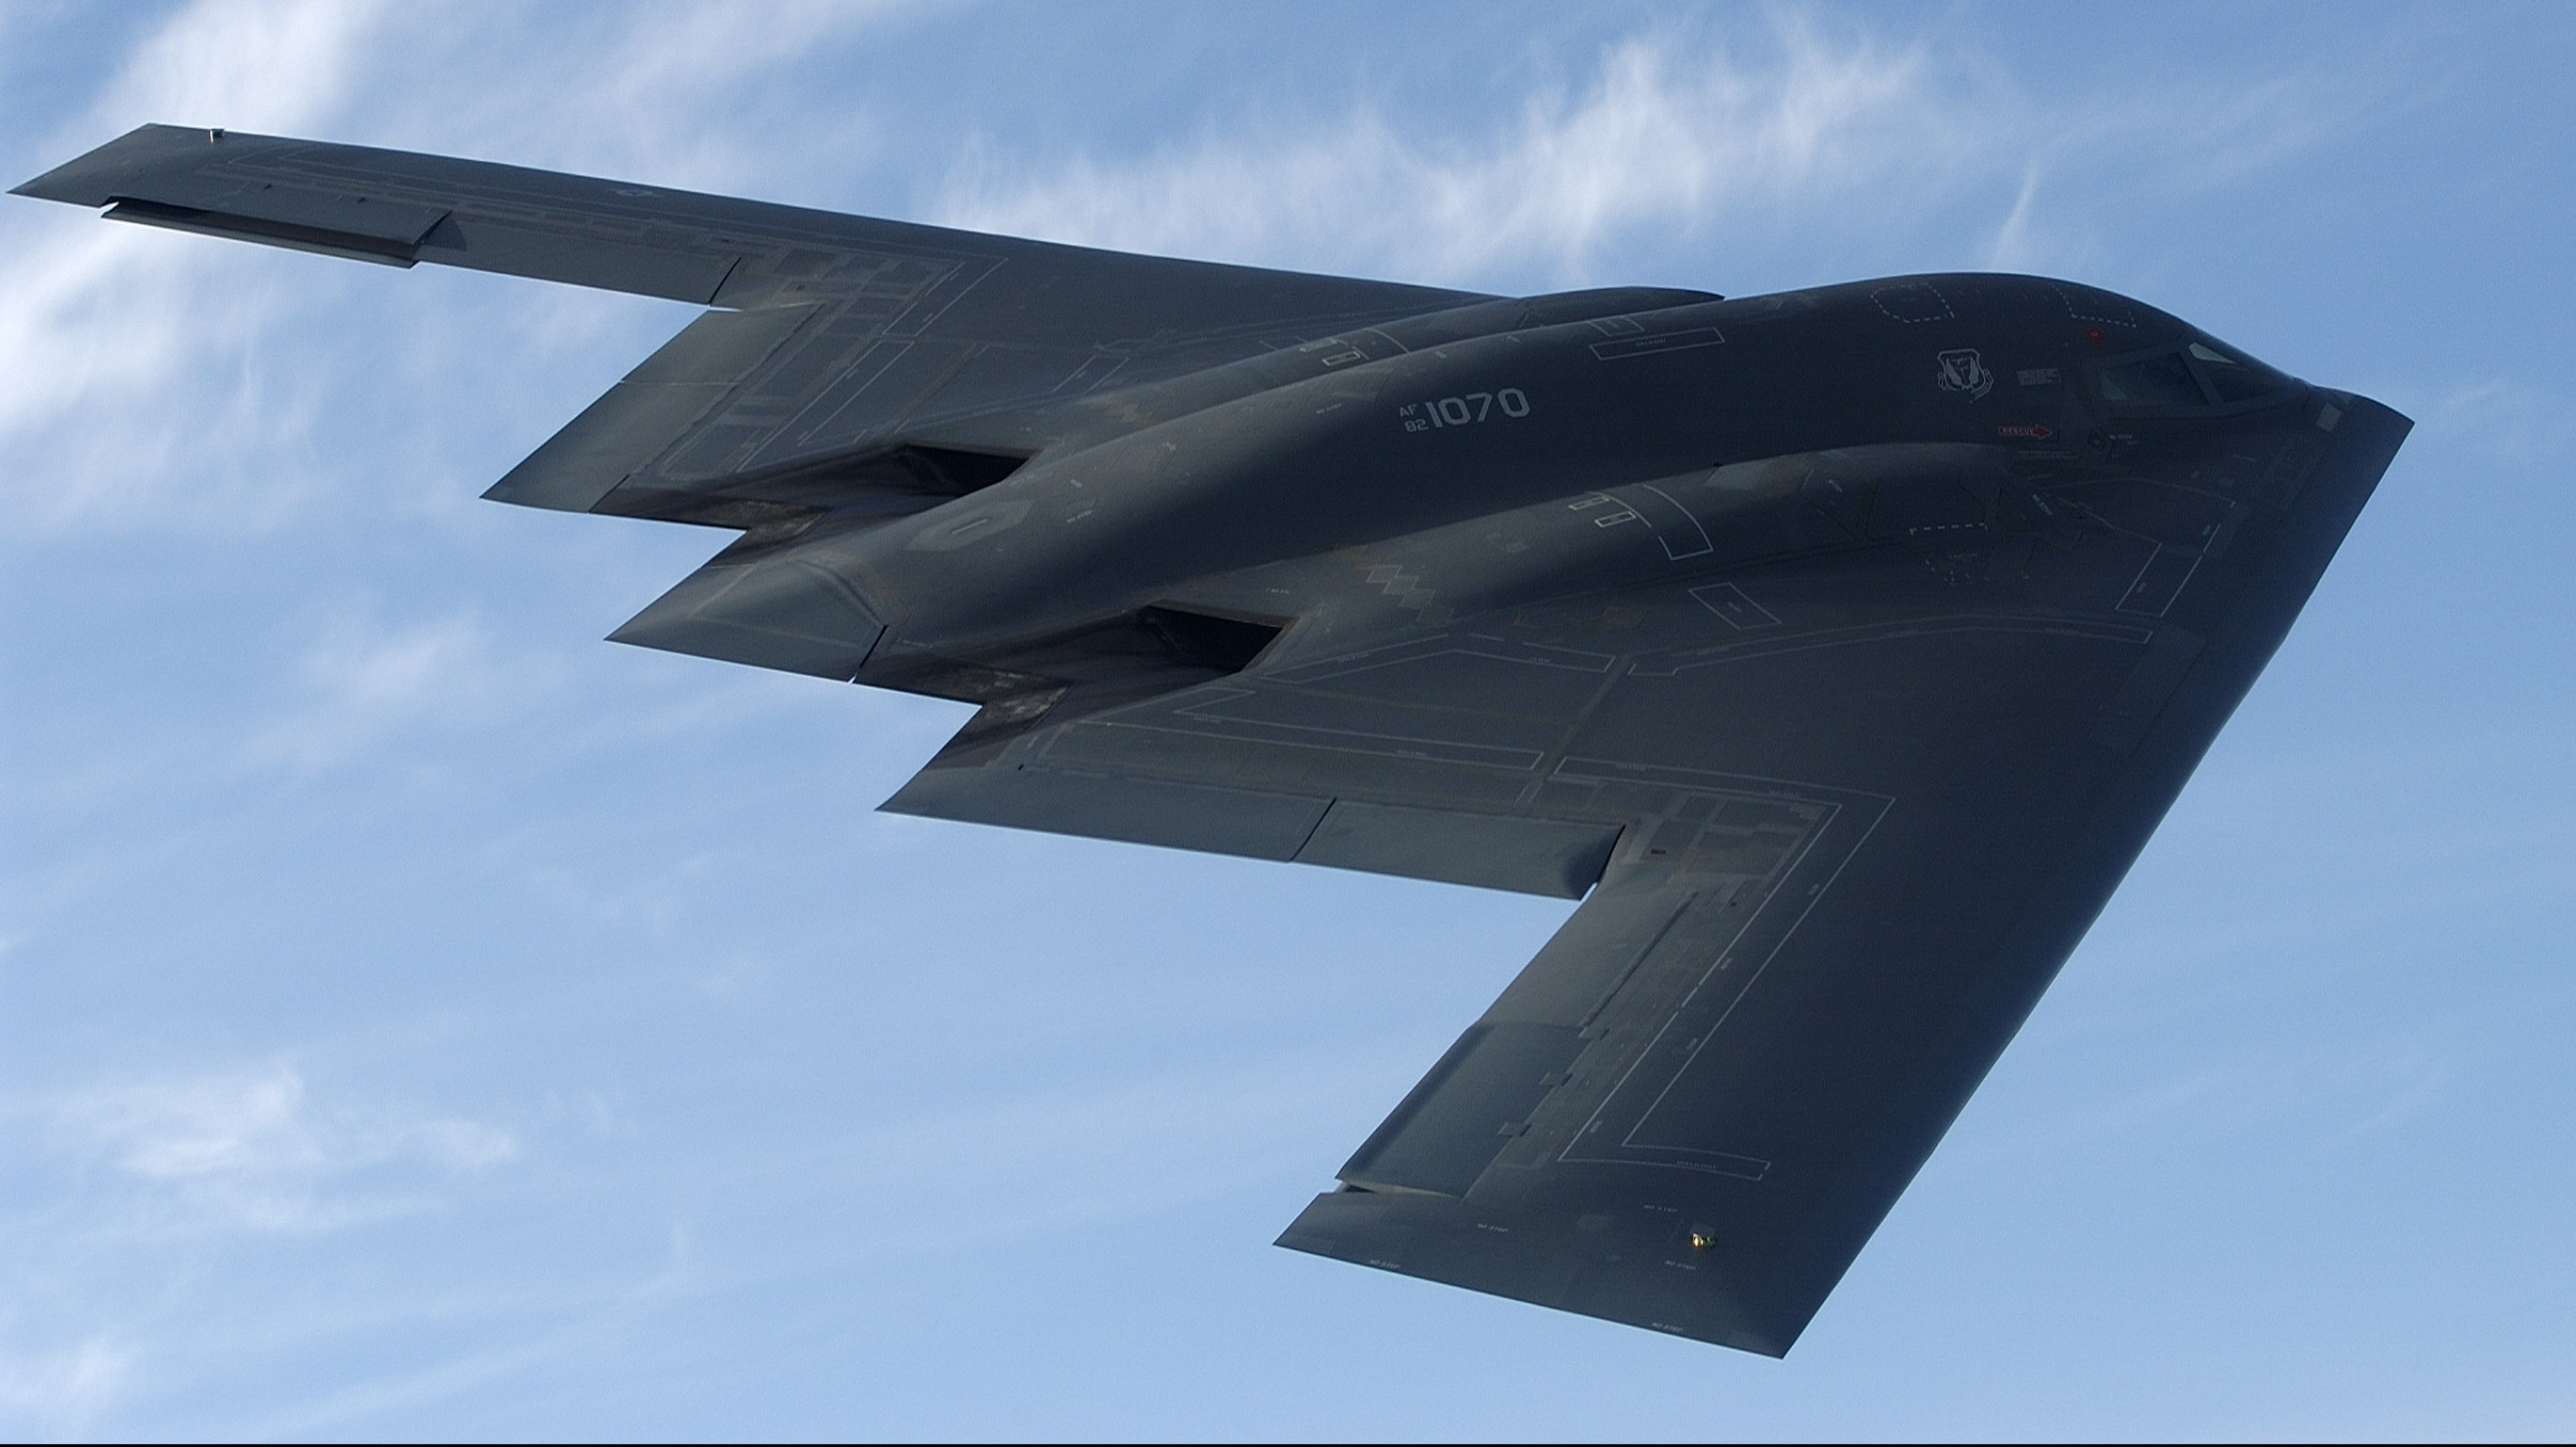 How Does The Stealth Bomber Work